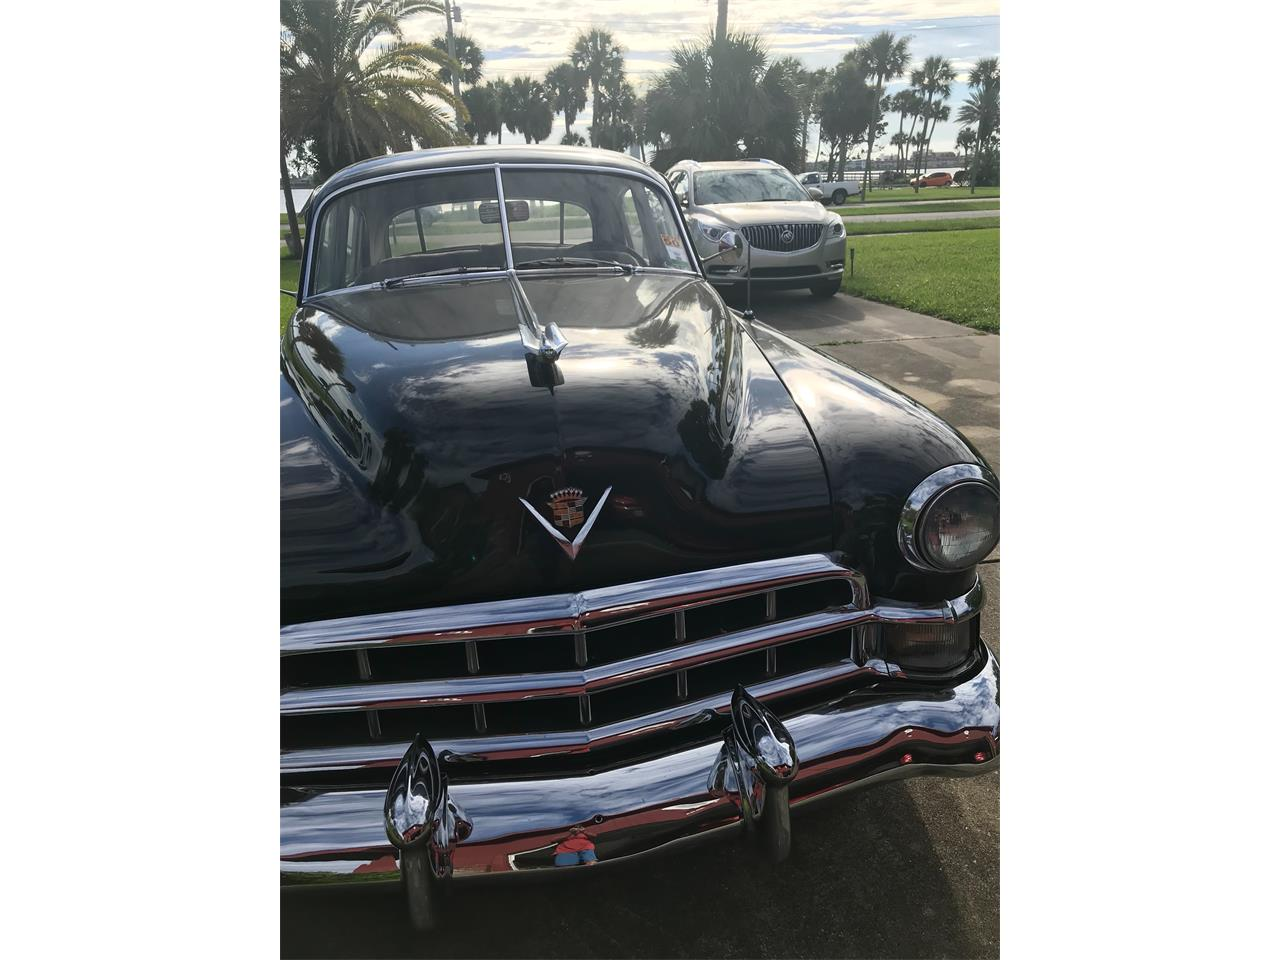 Large Picture of Classic 1949 Cadillac 4-Dr Sedan - $17,500.00 Offered by a Private Seller - QAJD